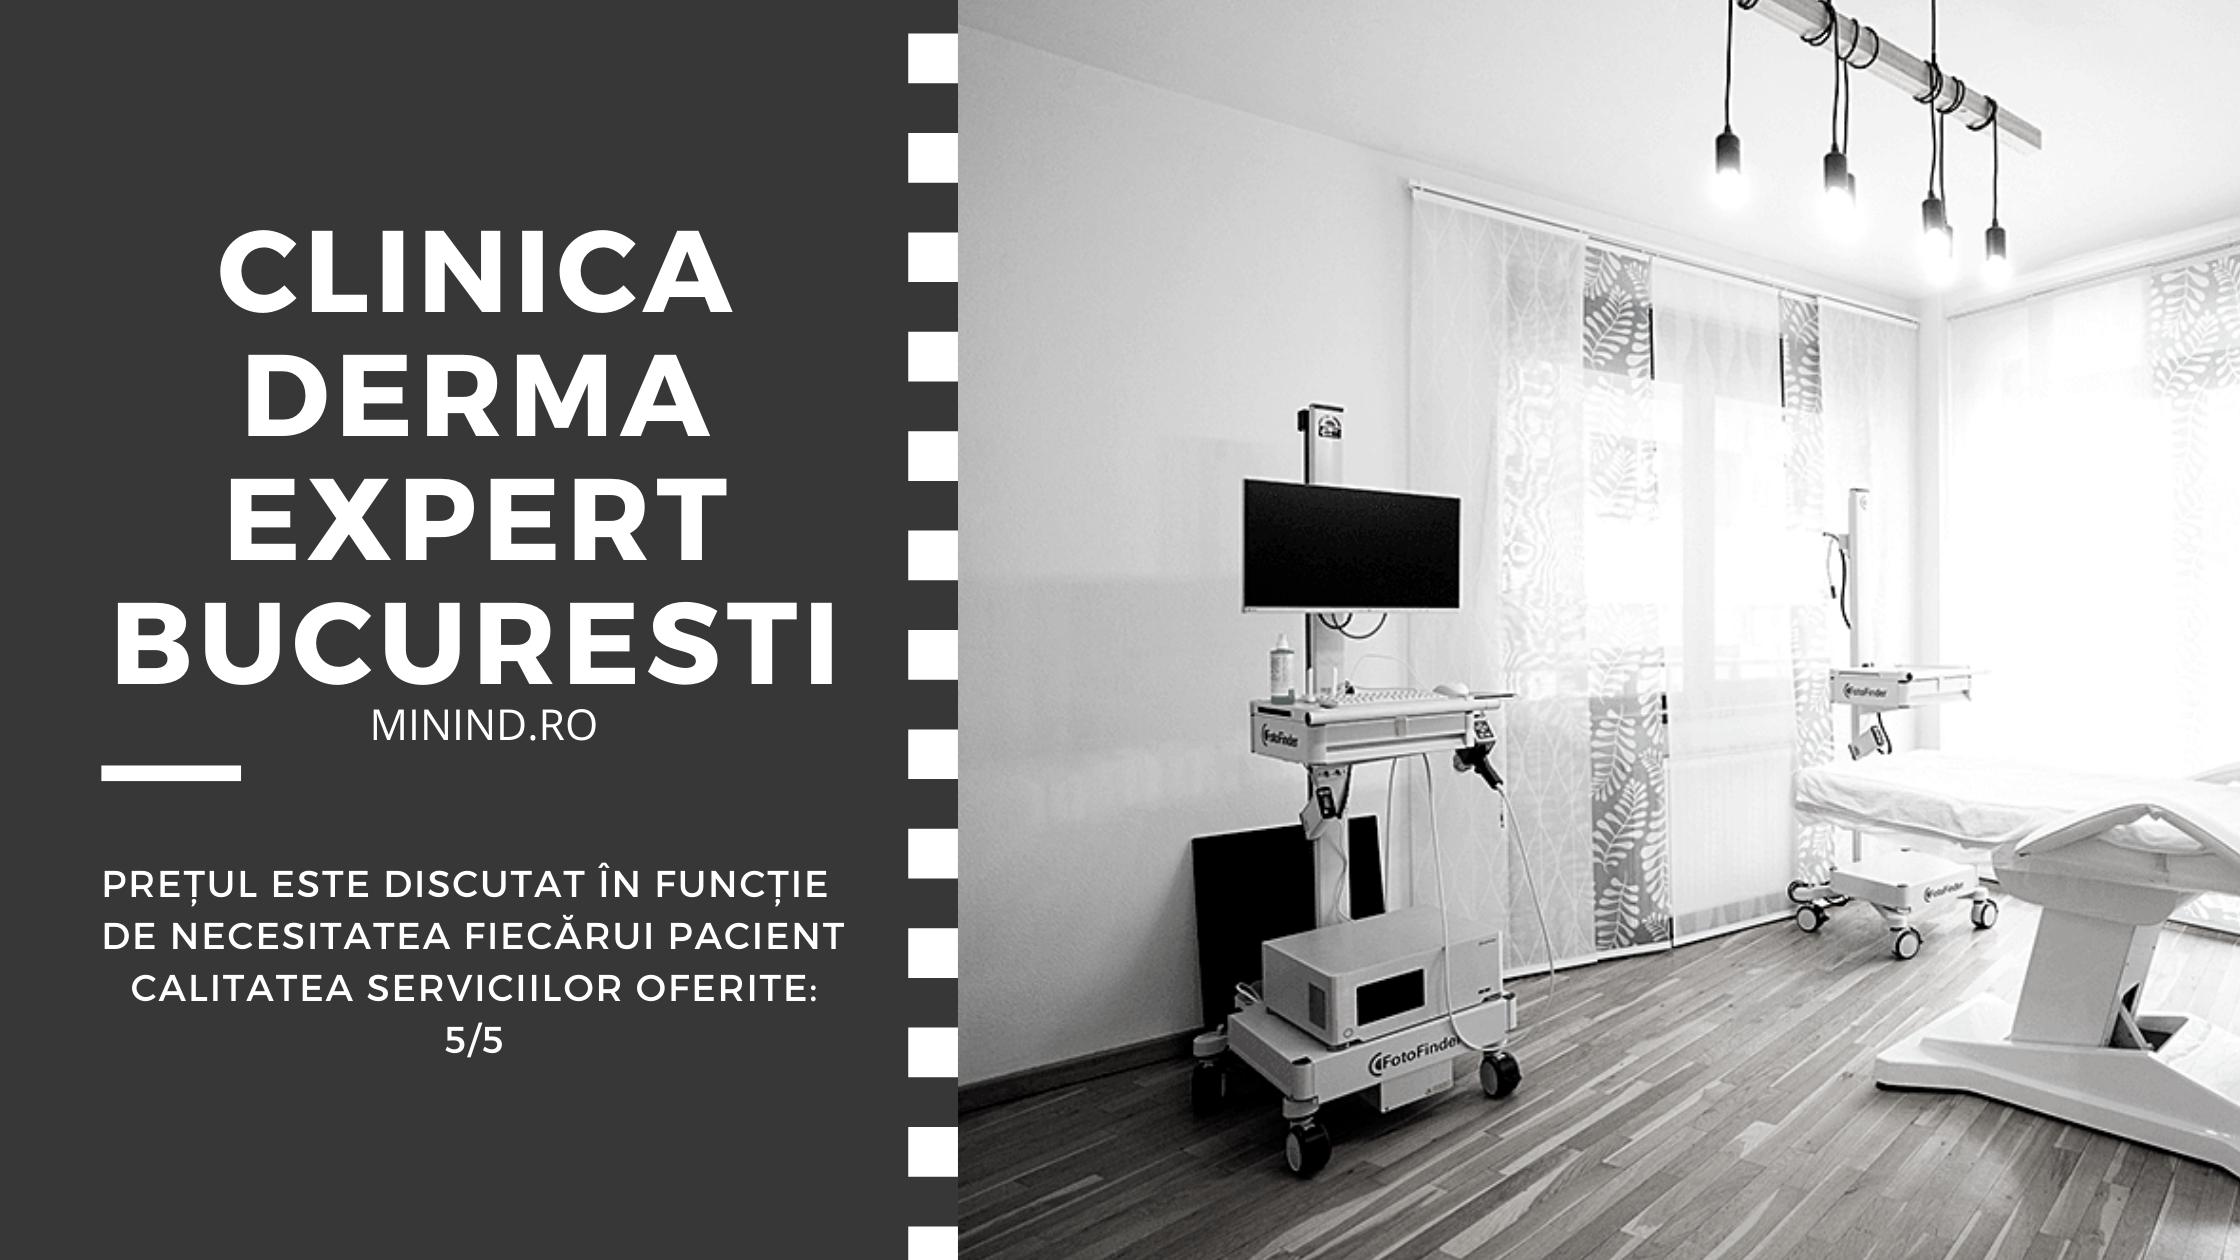 implant de par clinica derma expert bucuresti